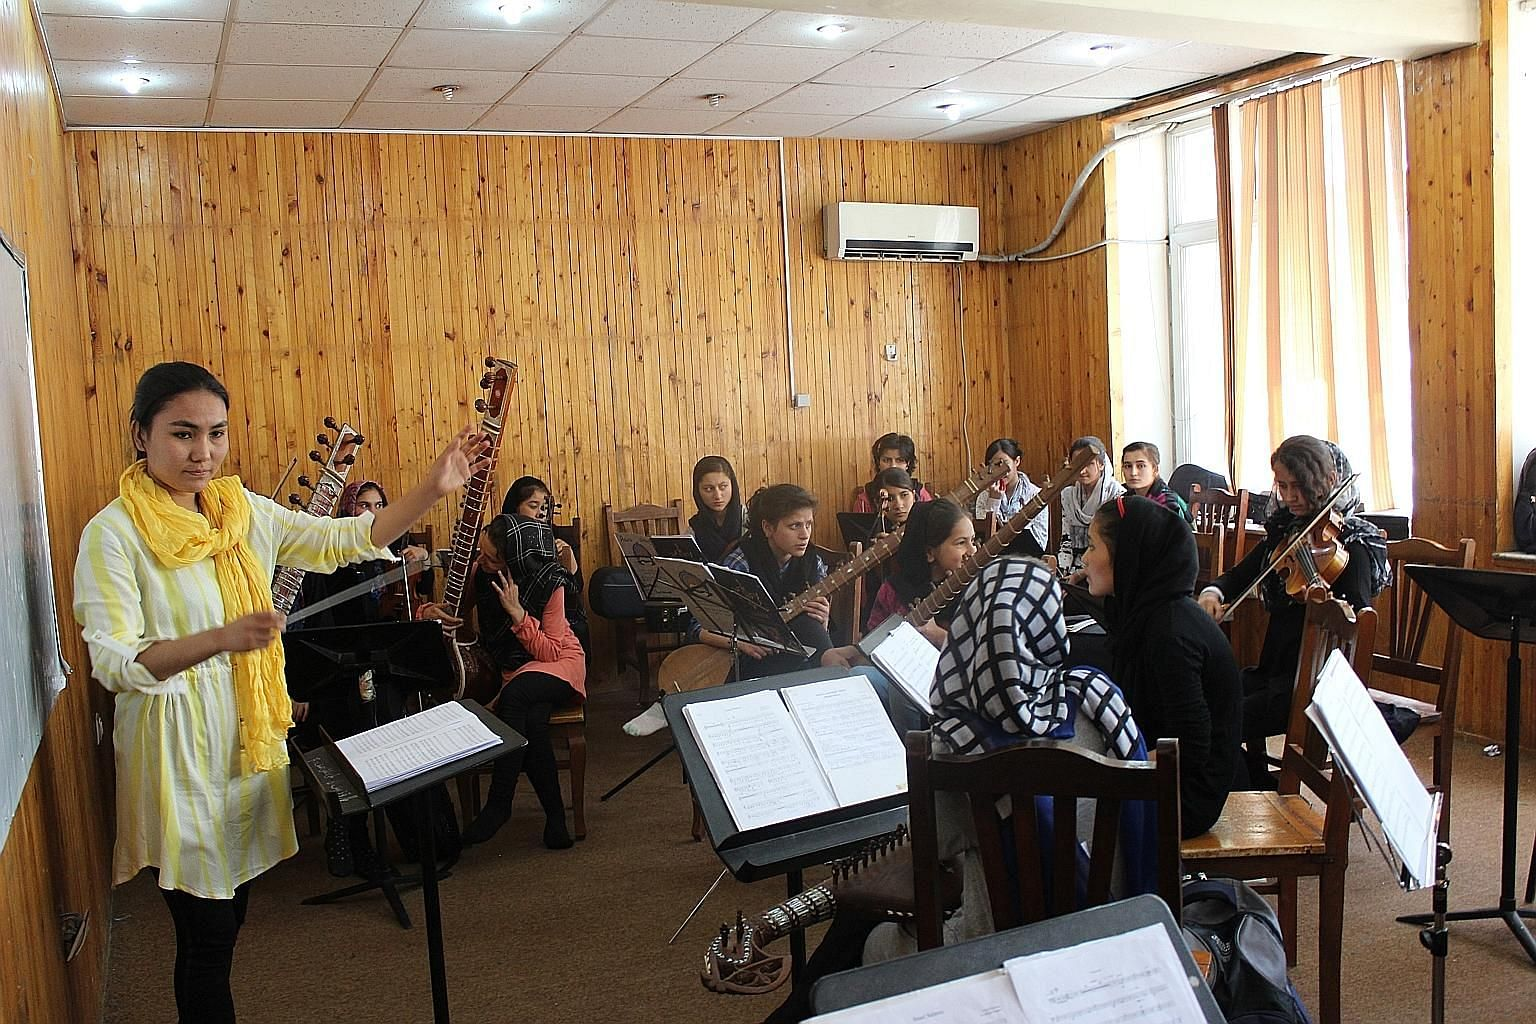 The Zohra Orchestra is the first in Afghanistan to be made up exclusively of girls. It held its first event at the Canadian Embassy in Kabul. The musicians range in age from 12 to 21, and have had the opportunity to play internationally, like at the